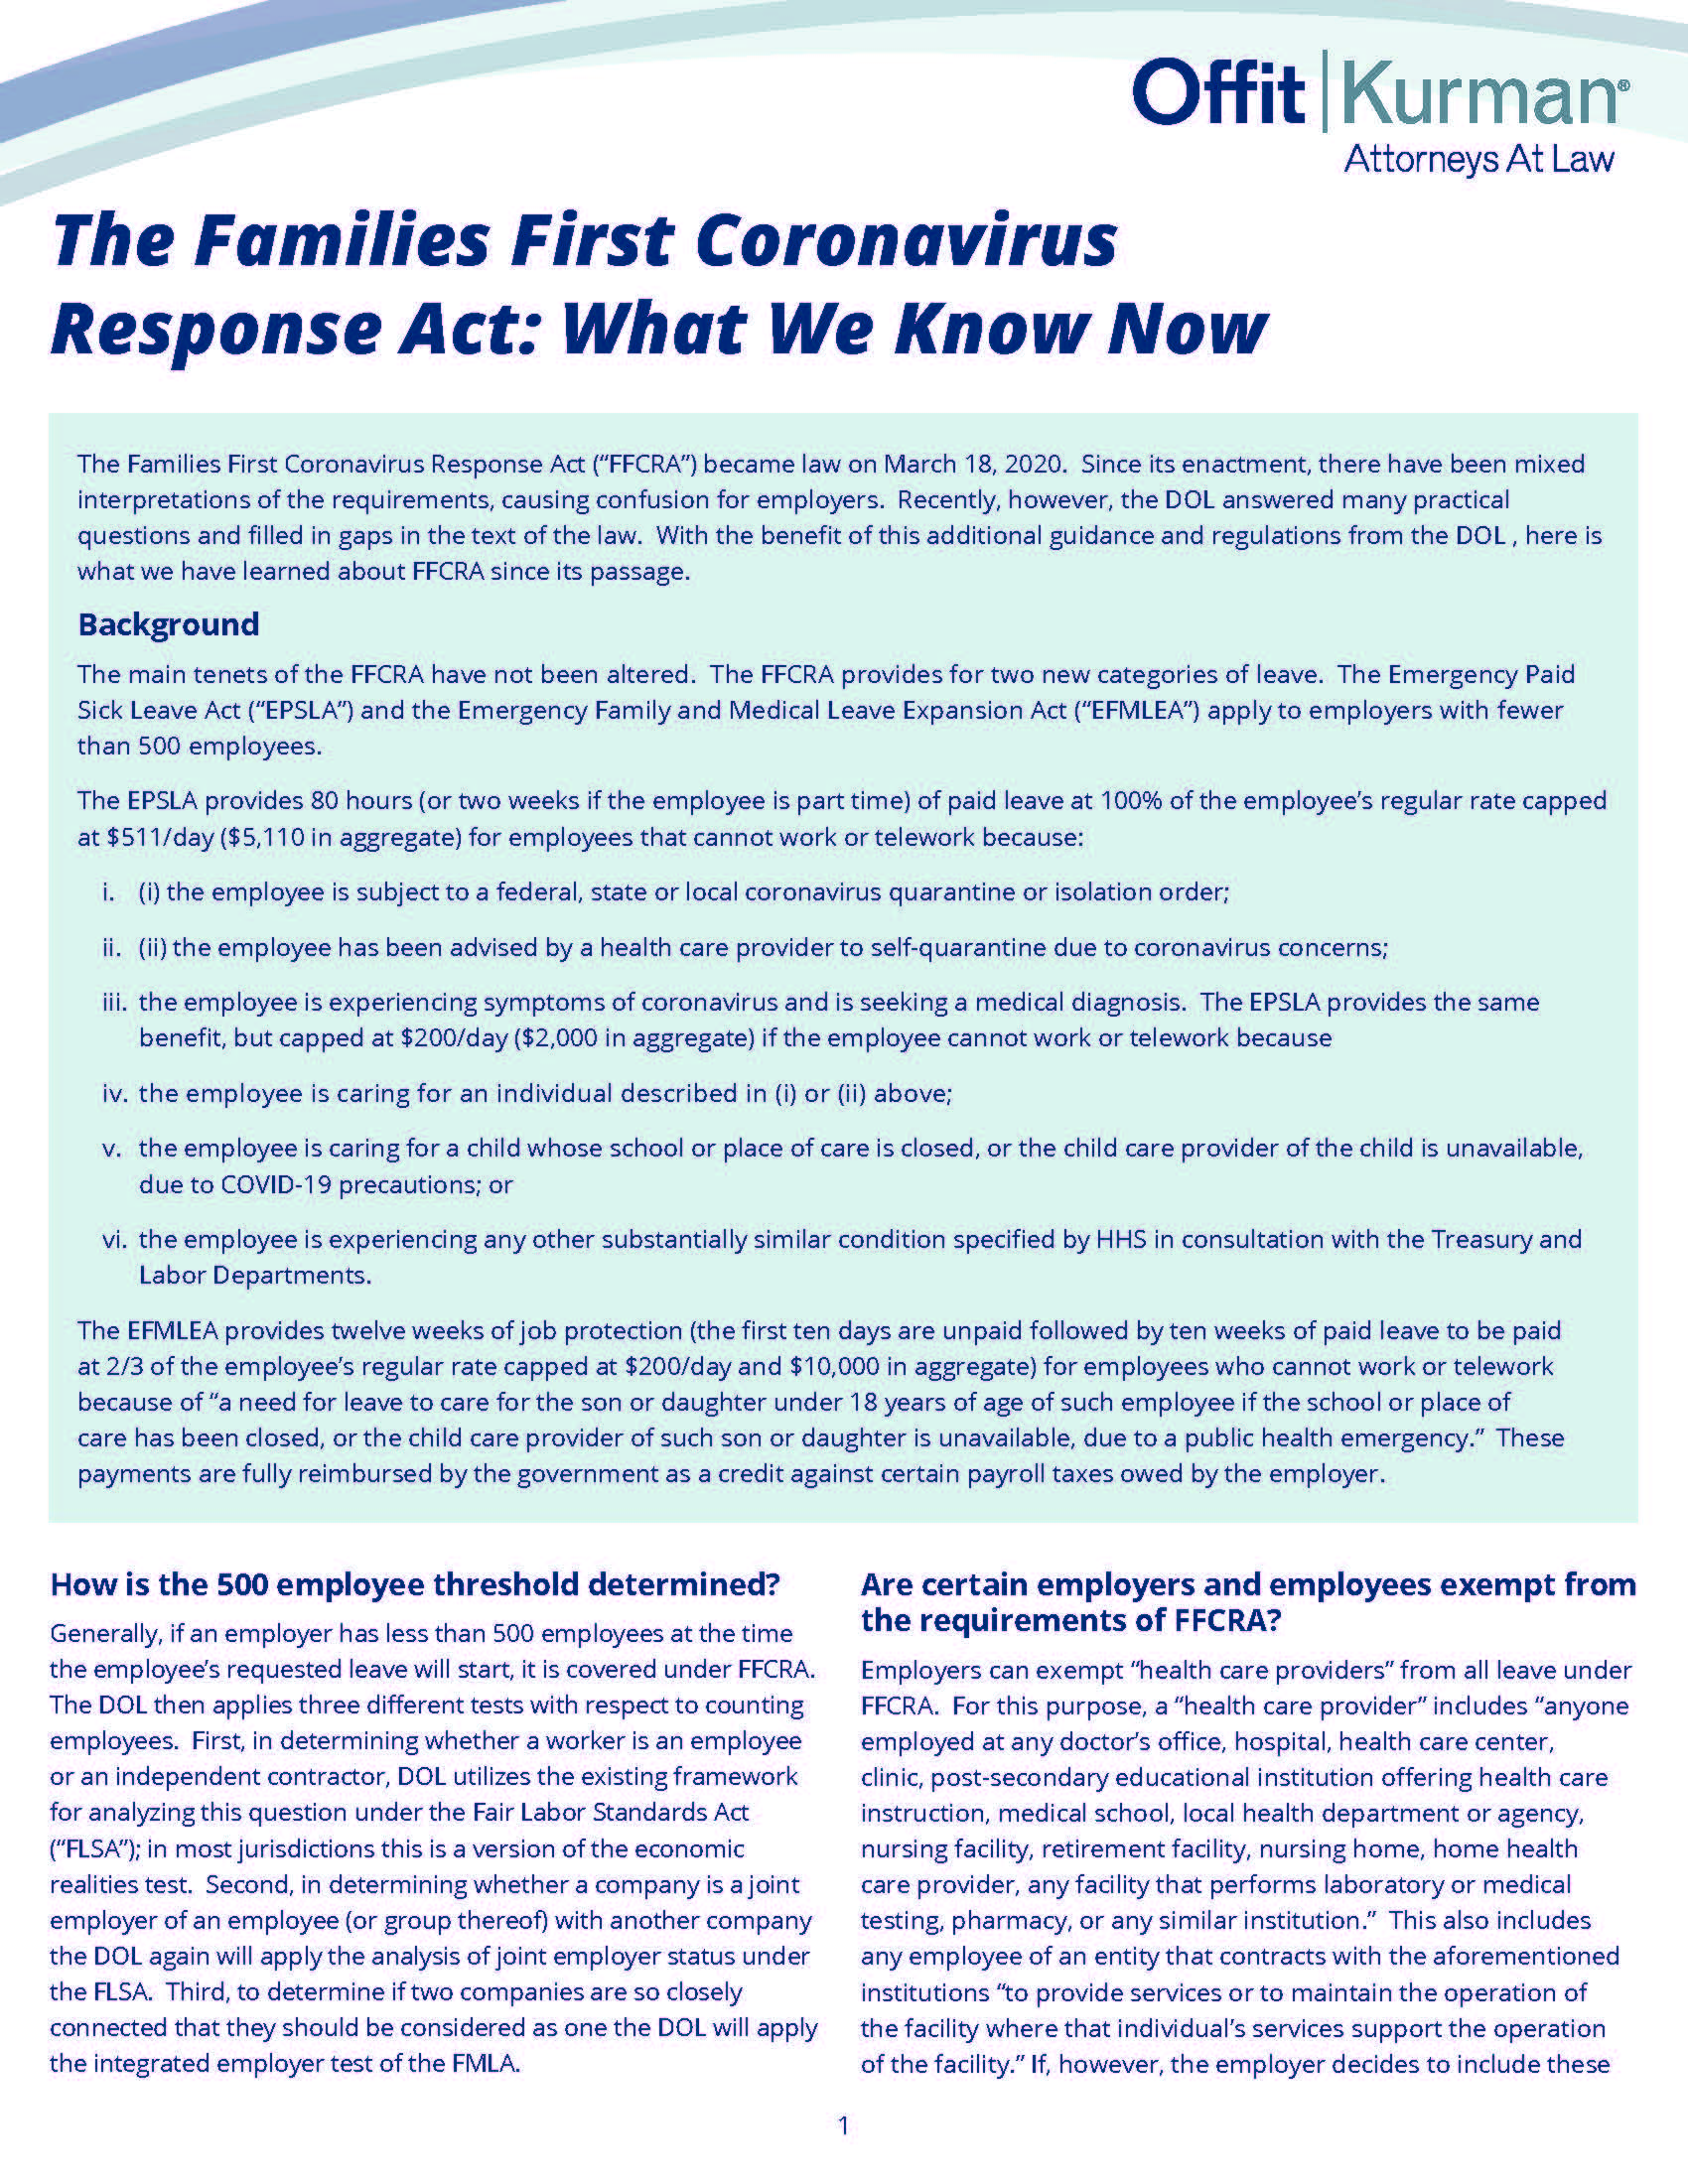 The FFCRA - What We Know Now